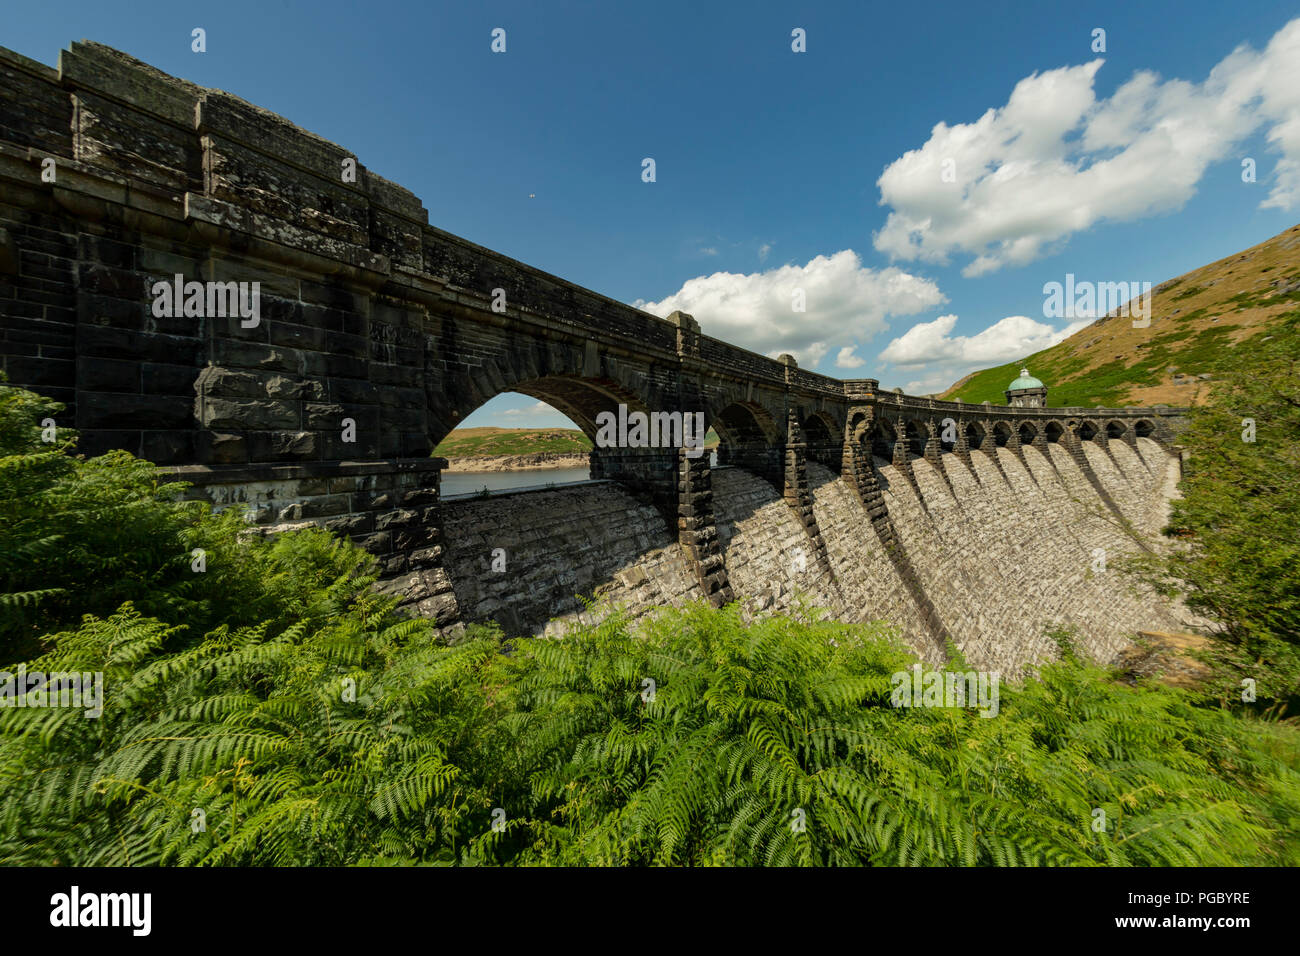 Craig Goch Dam/Reservoir in the Elan Vally, dam arches and walls that normally have water flowing are dry - Stock Image